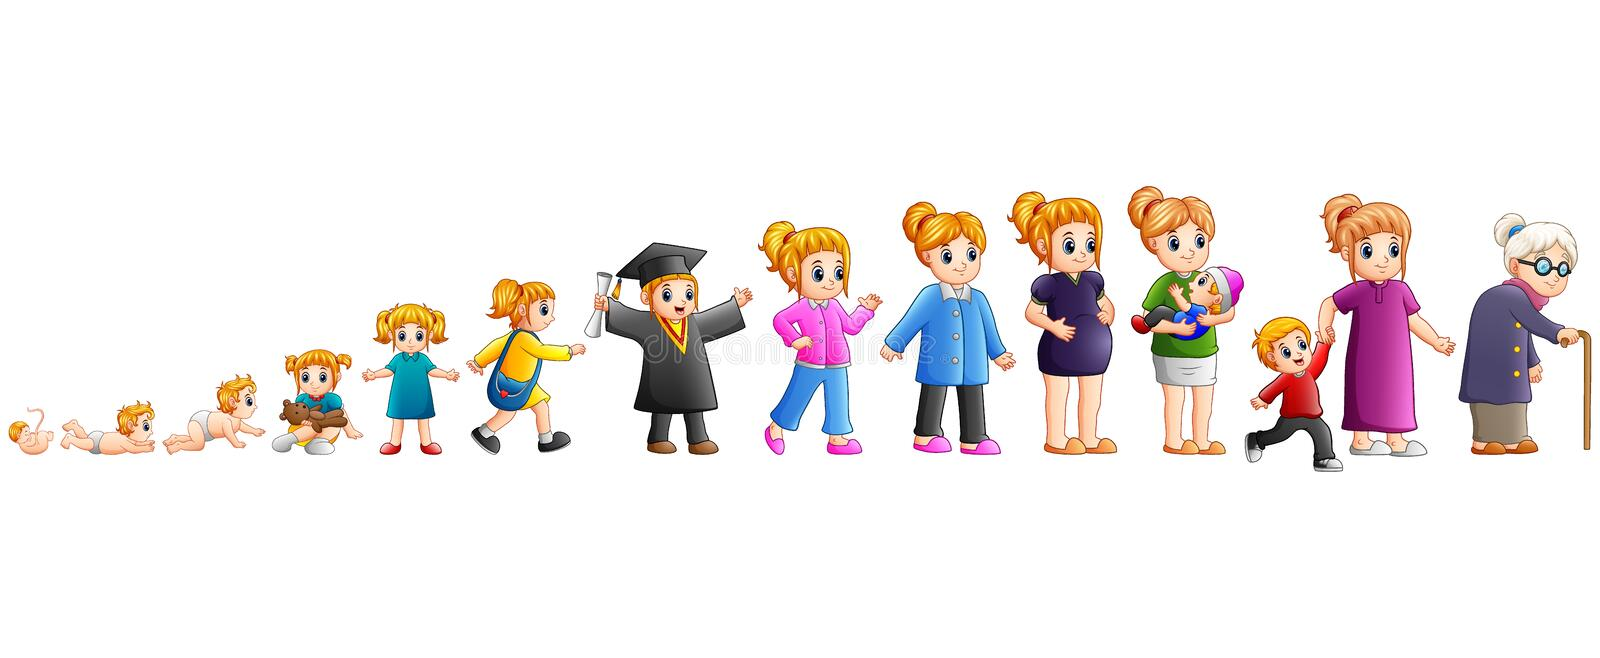 Different stage of life of a female from baby to old vector illustration